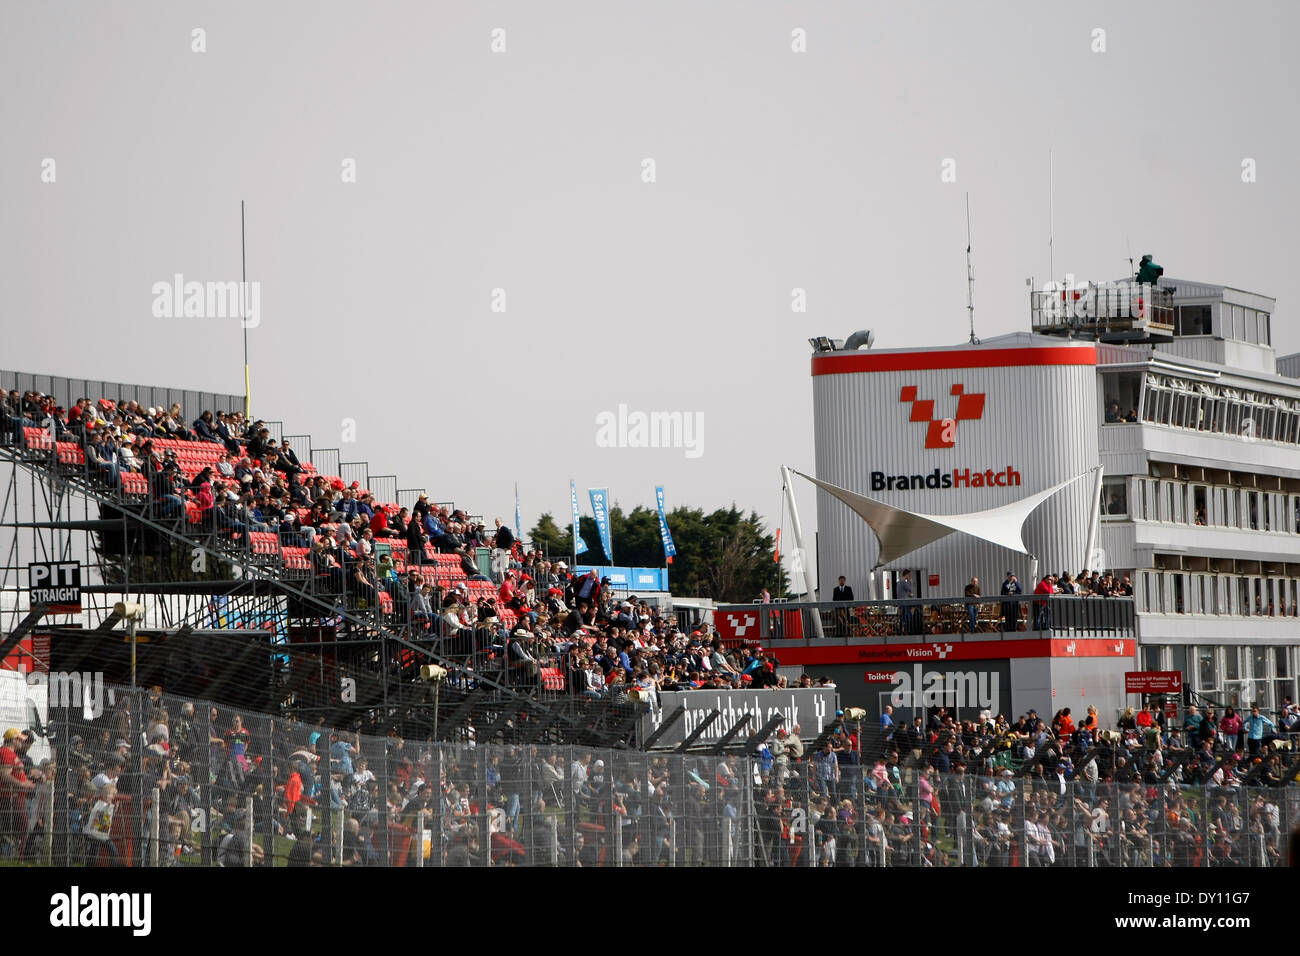 Crowds at Brands Hatch - Stock Image